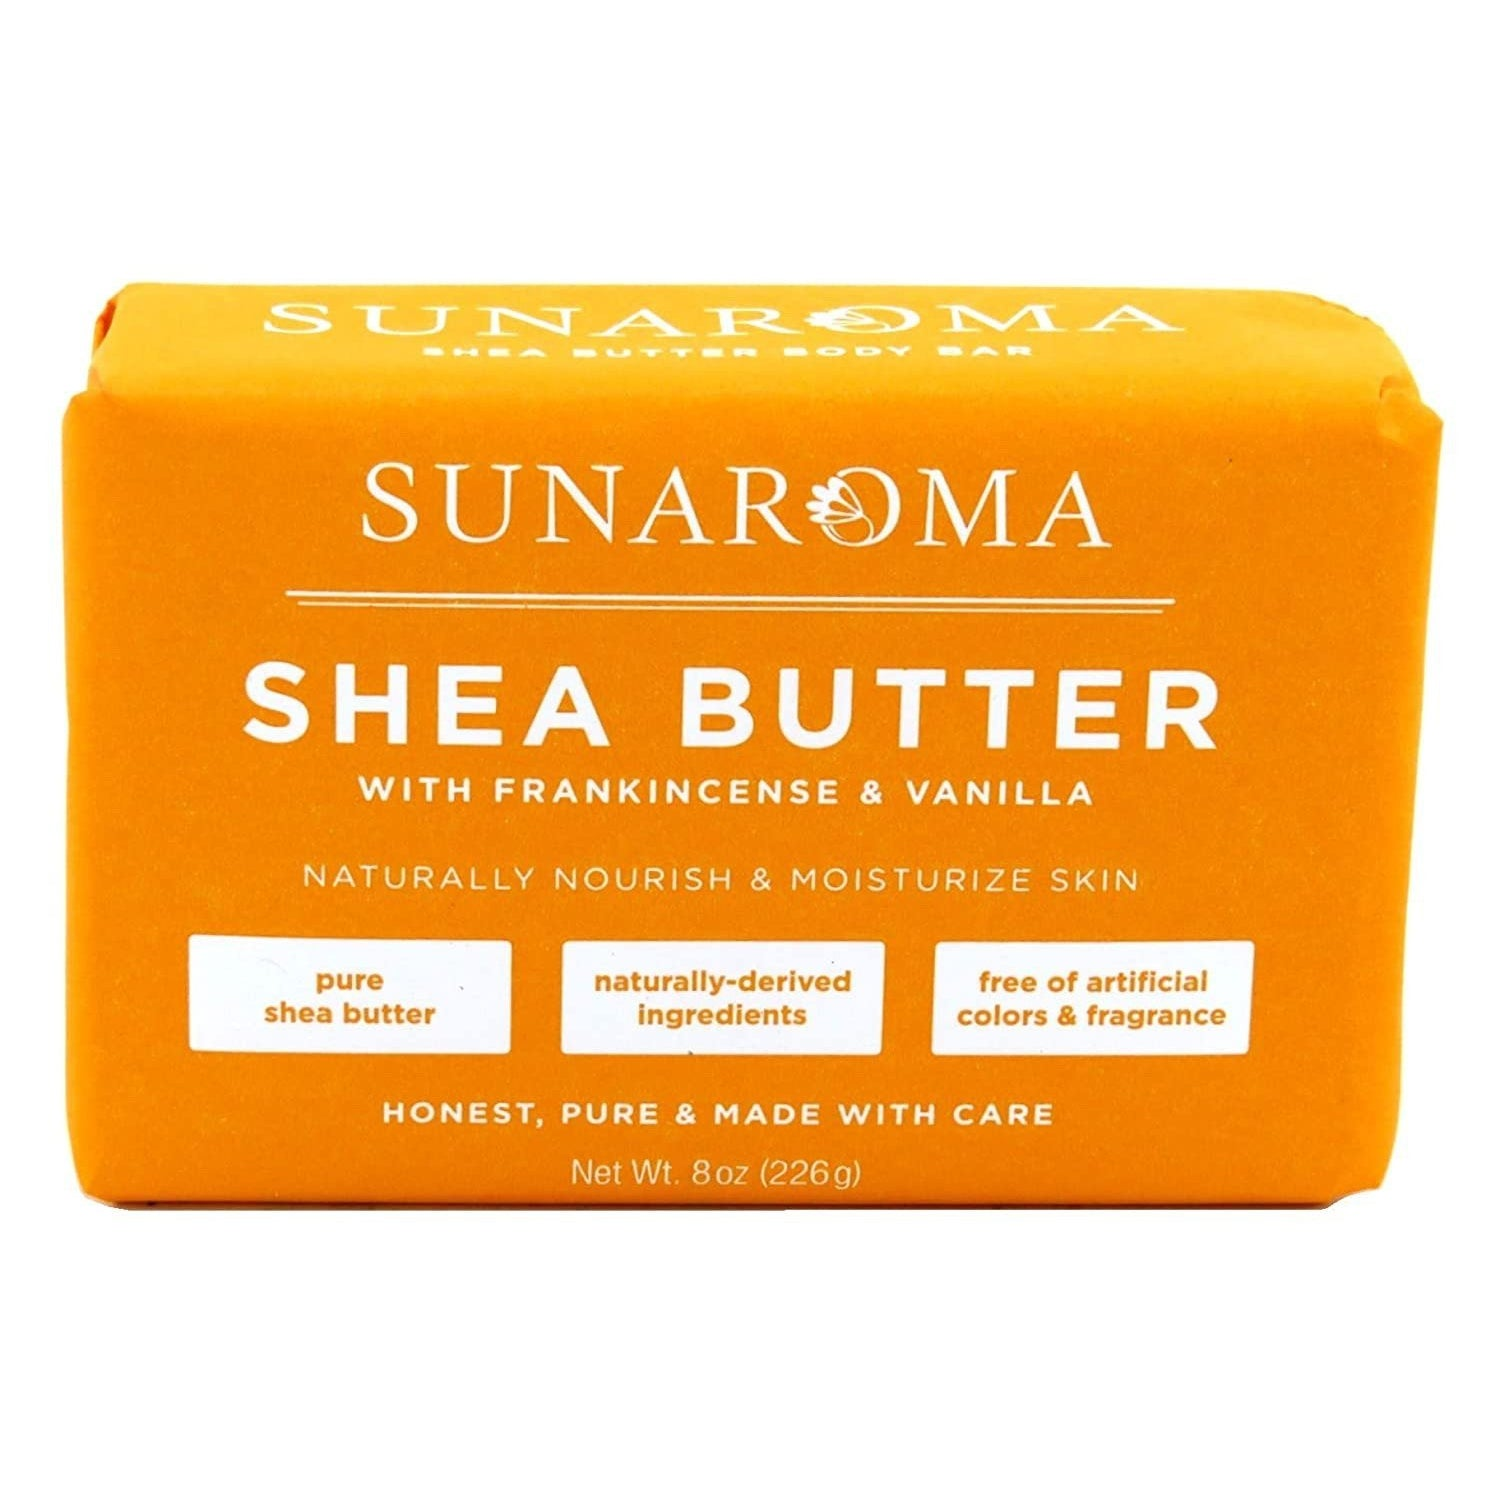 Sunaroma Soap - The Necessities Company